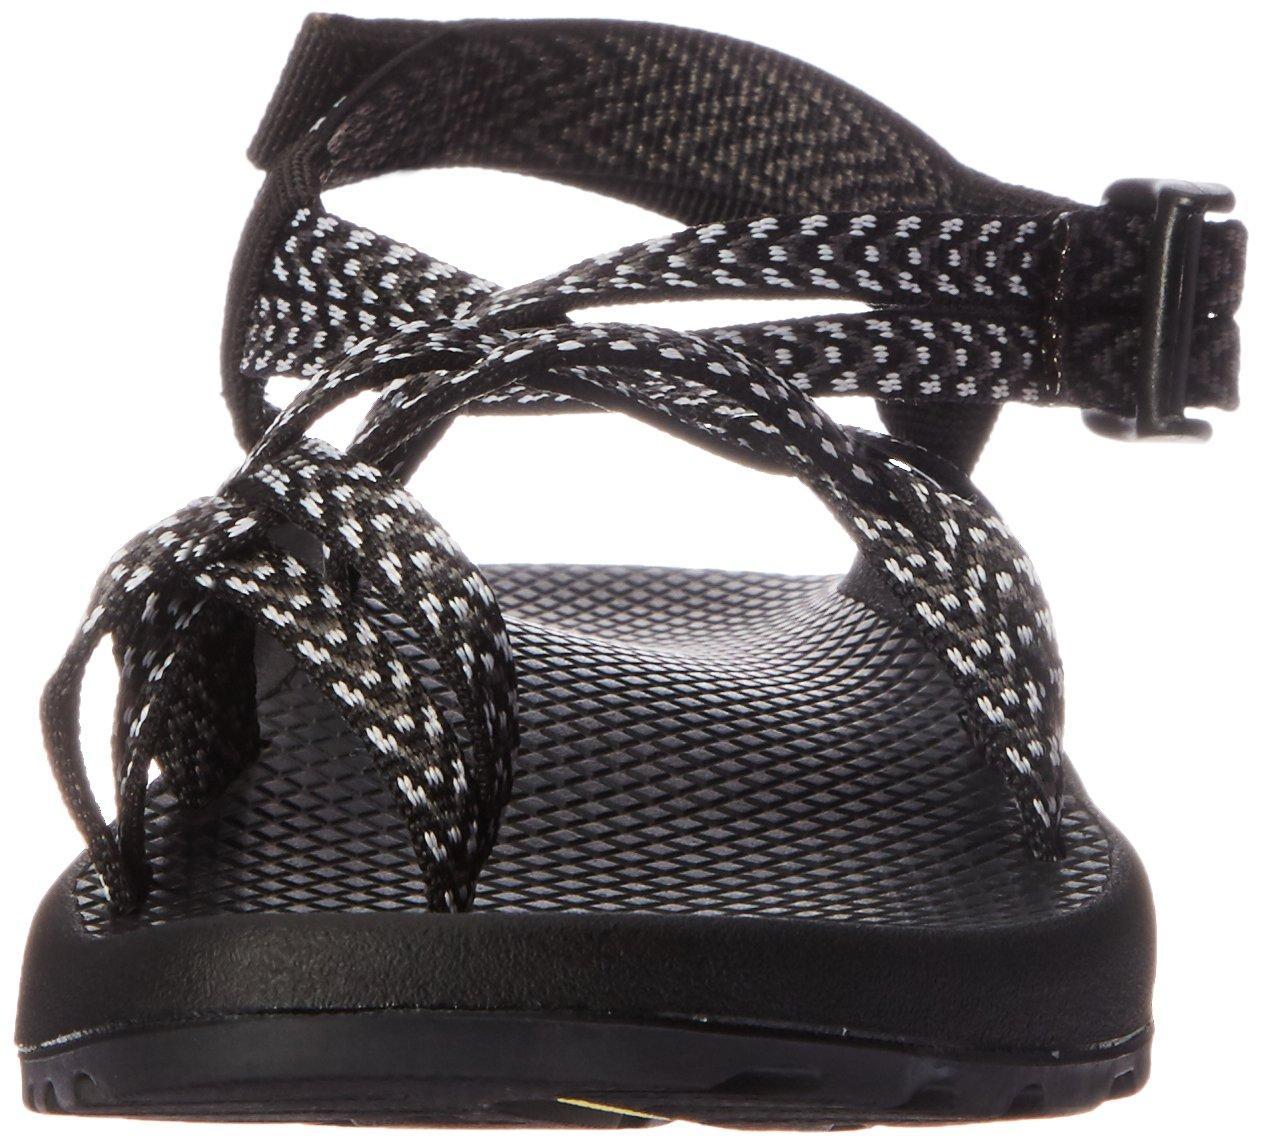 Chaco Women's ZX2 Classic Athletic Sandal, Boost Black, 7 M US by Chaco (Image #4)